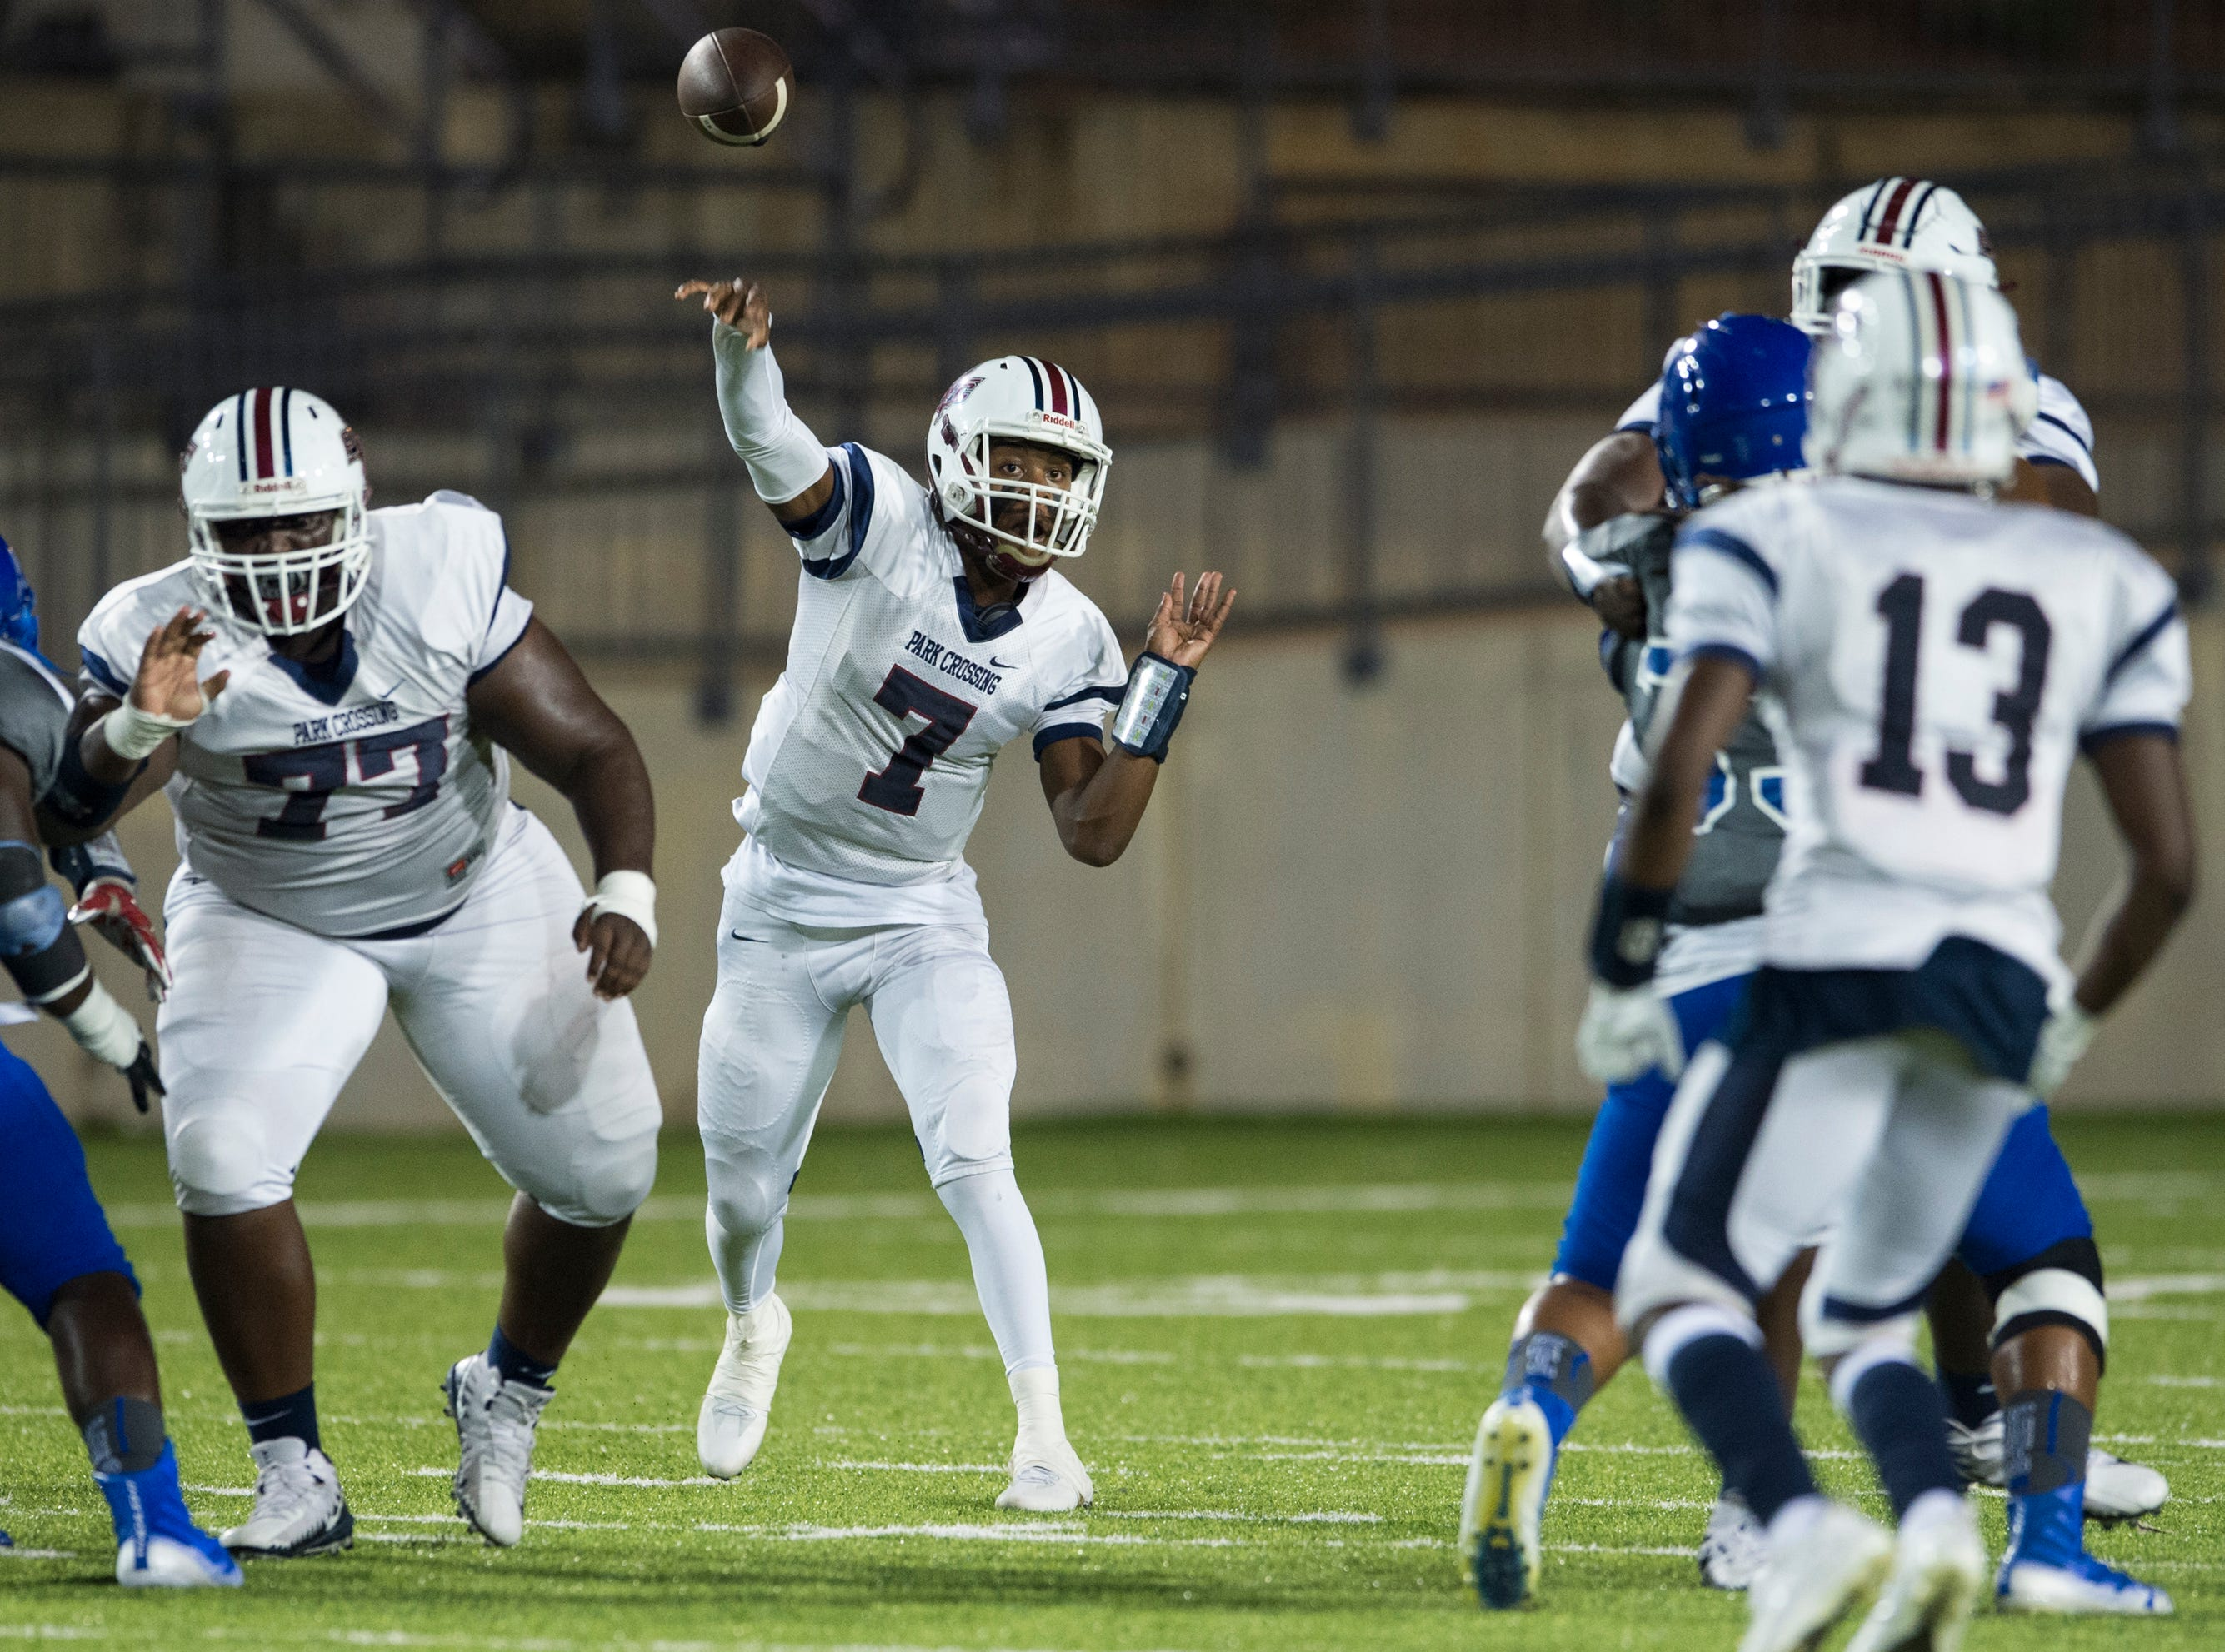 Park Crossing's Trevor Robinson (7) throws the ball down field at Cramton Bowl in Montgomery, Ala., on Friday, Sept. 21, 2018. Lanier leads Park Crossing 14-7 at halftime.